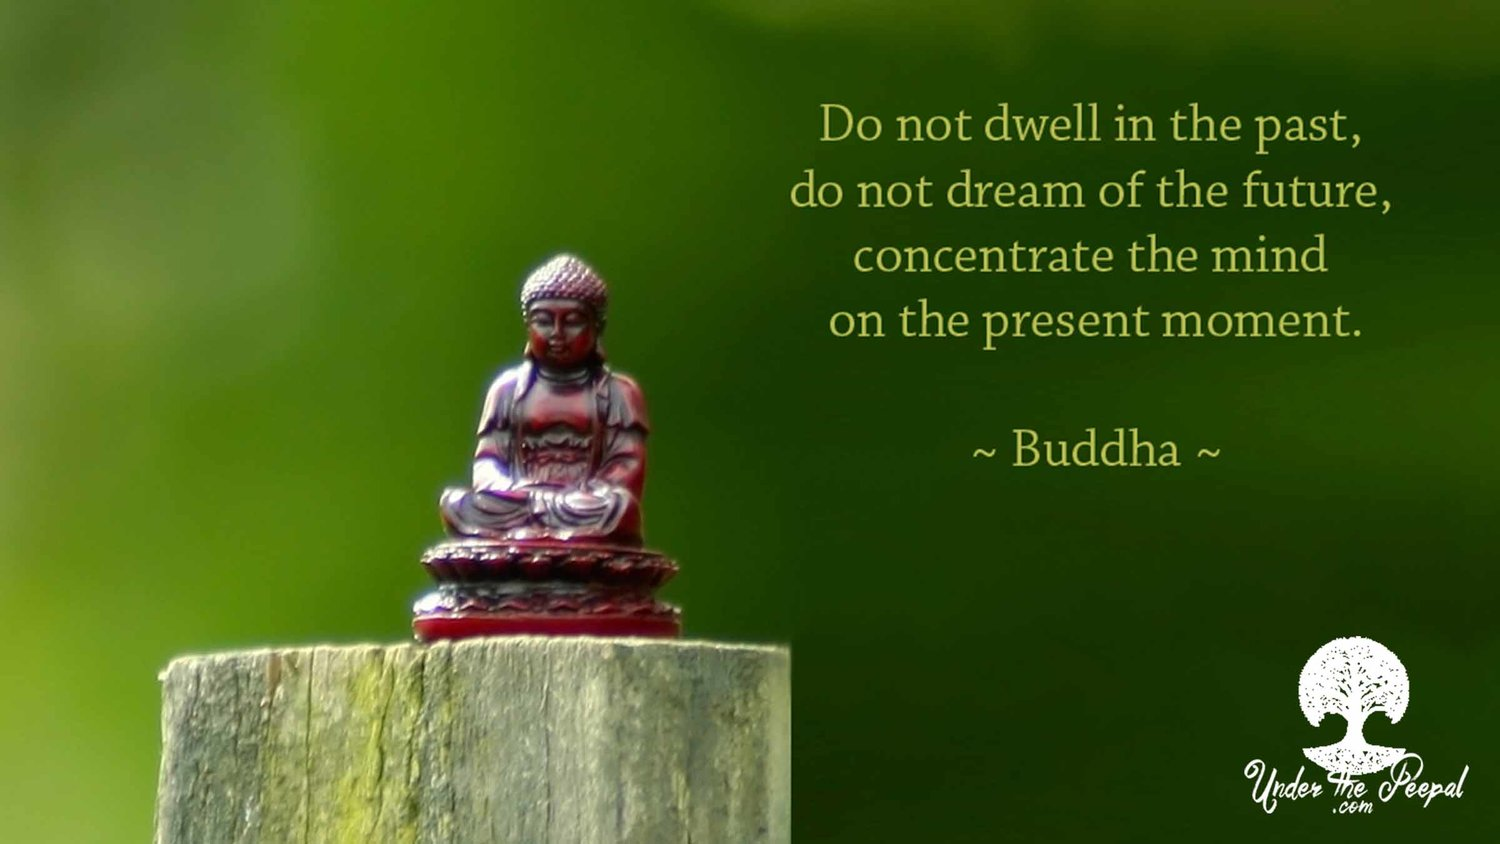 Do not dwell in the past, do not dream of the future, concentrate the mind on the present moment- Buddha Quote